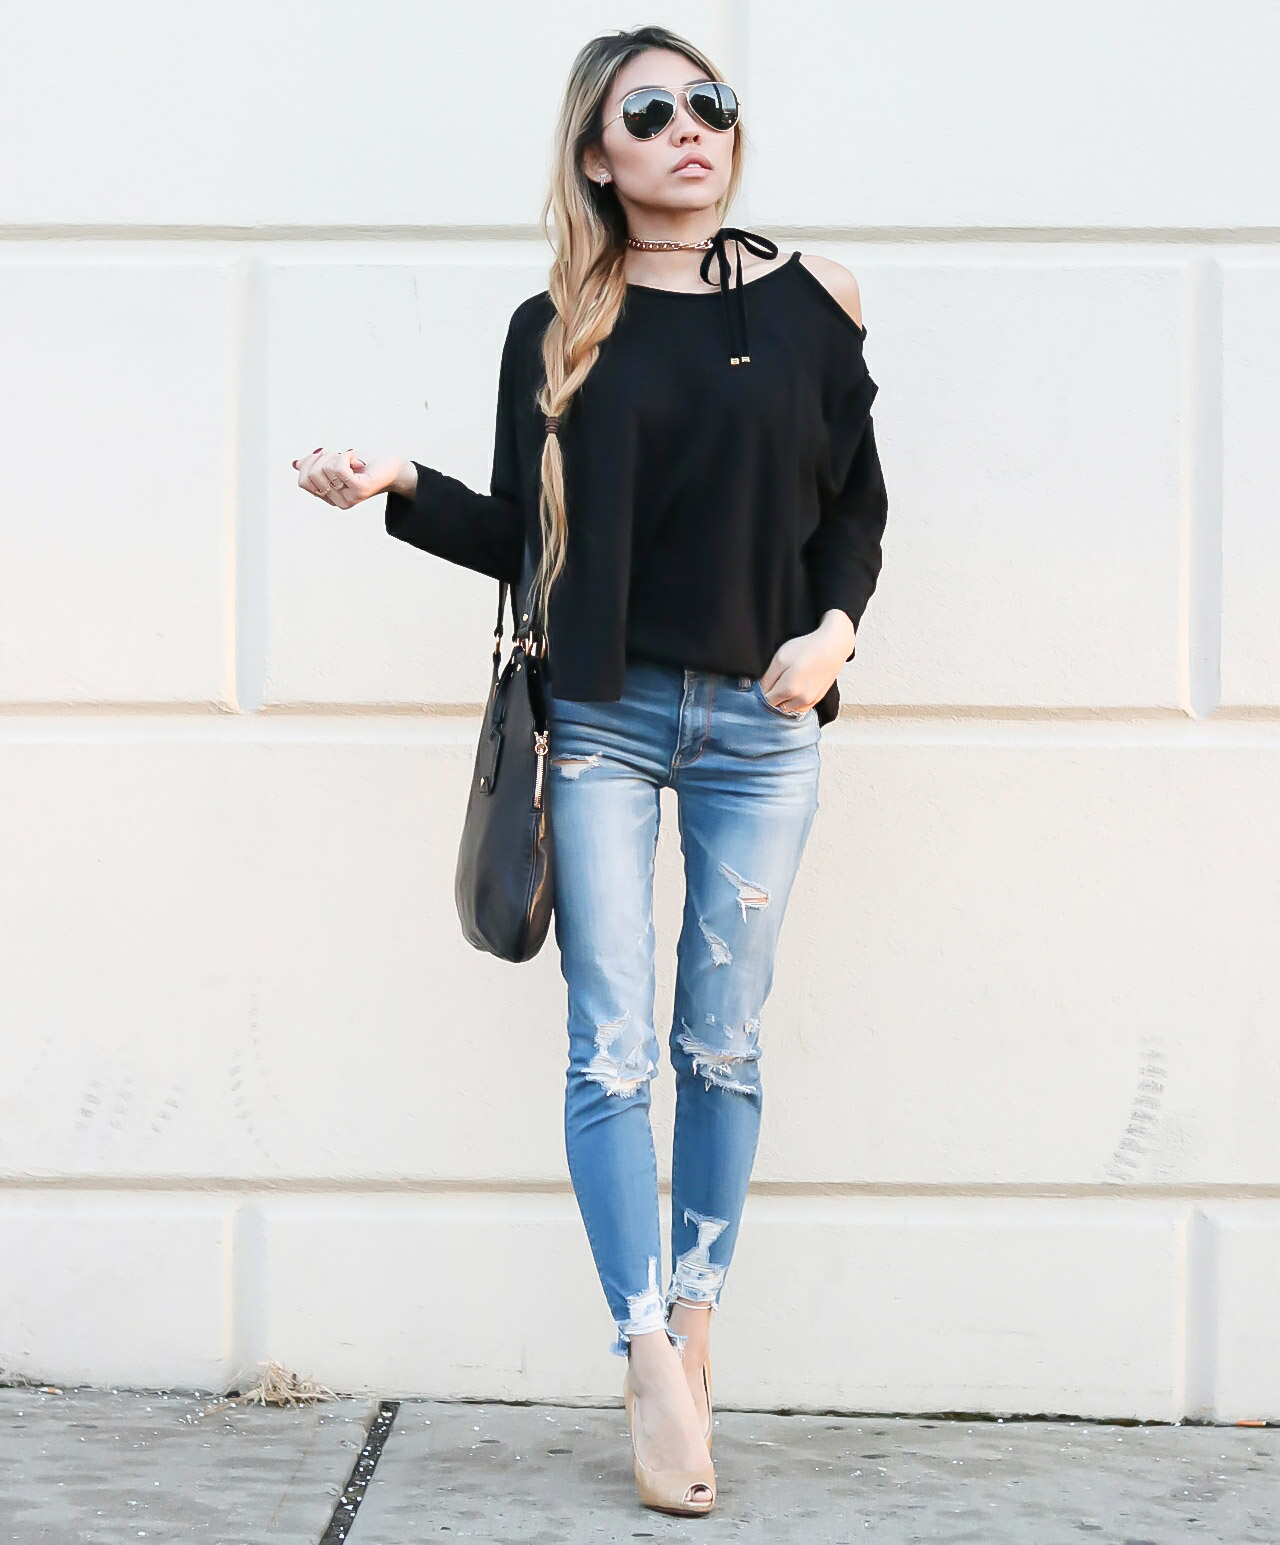 Off The Shoulder Strappy Top Ripped Jeans And Tie Chain